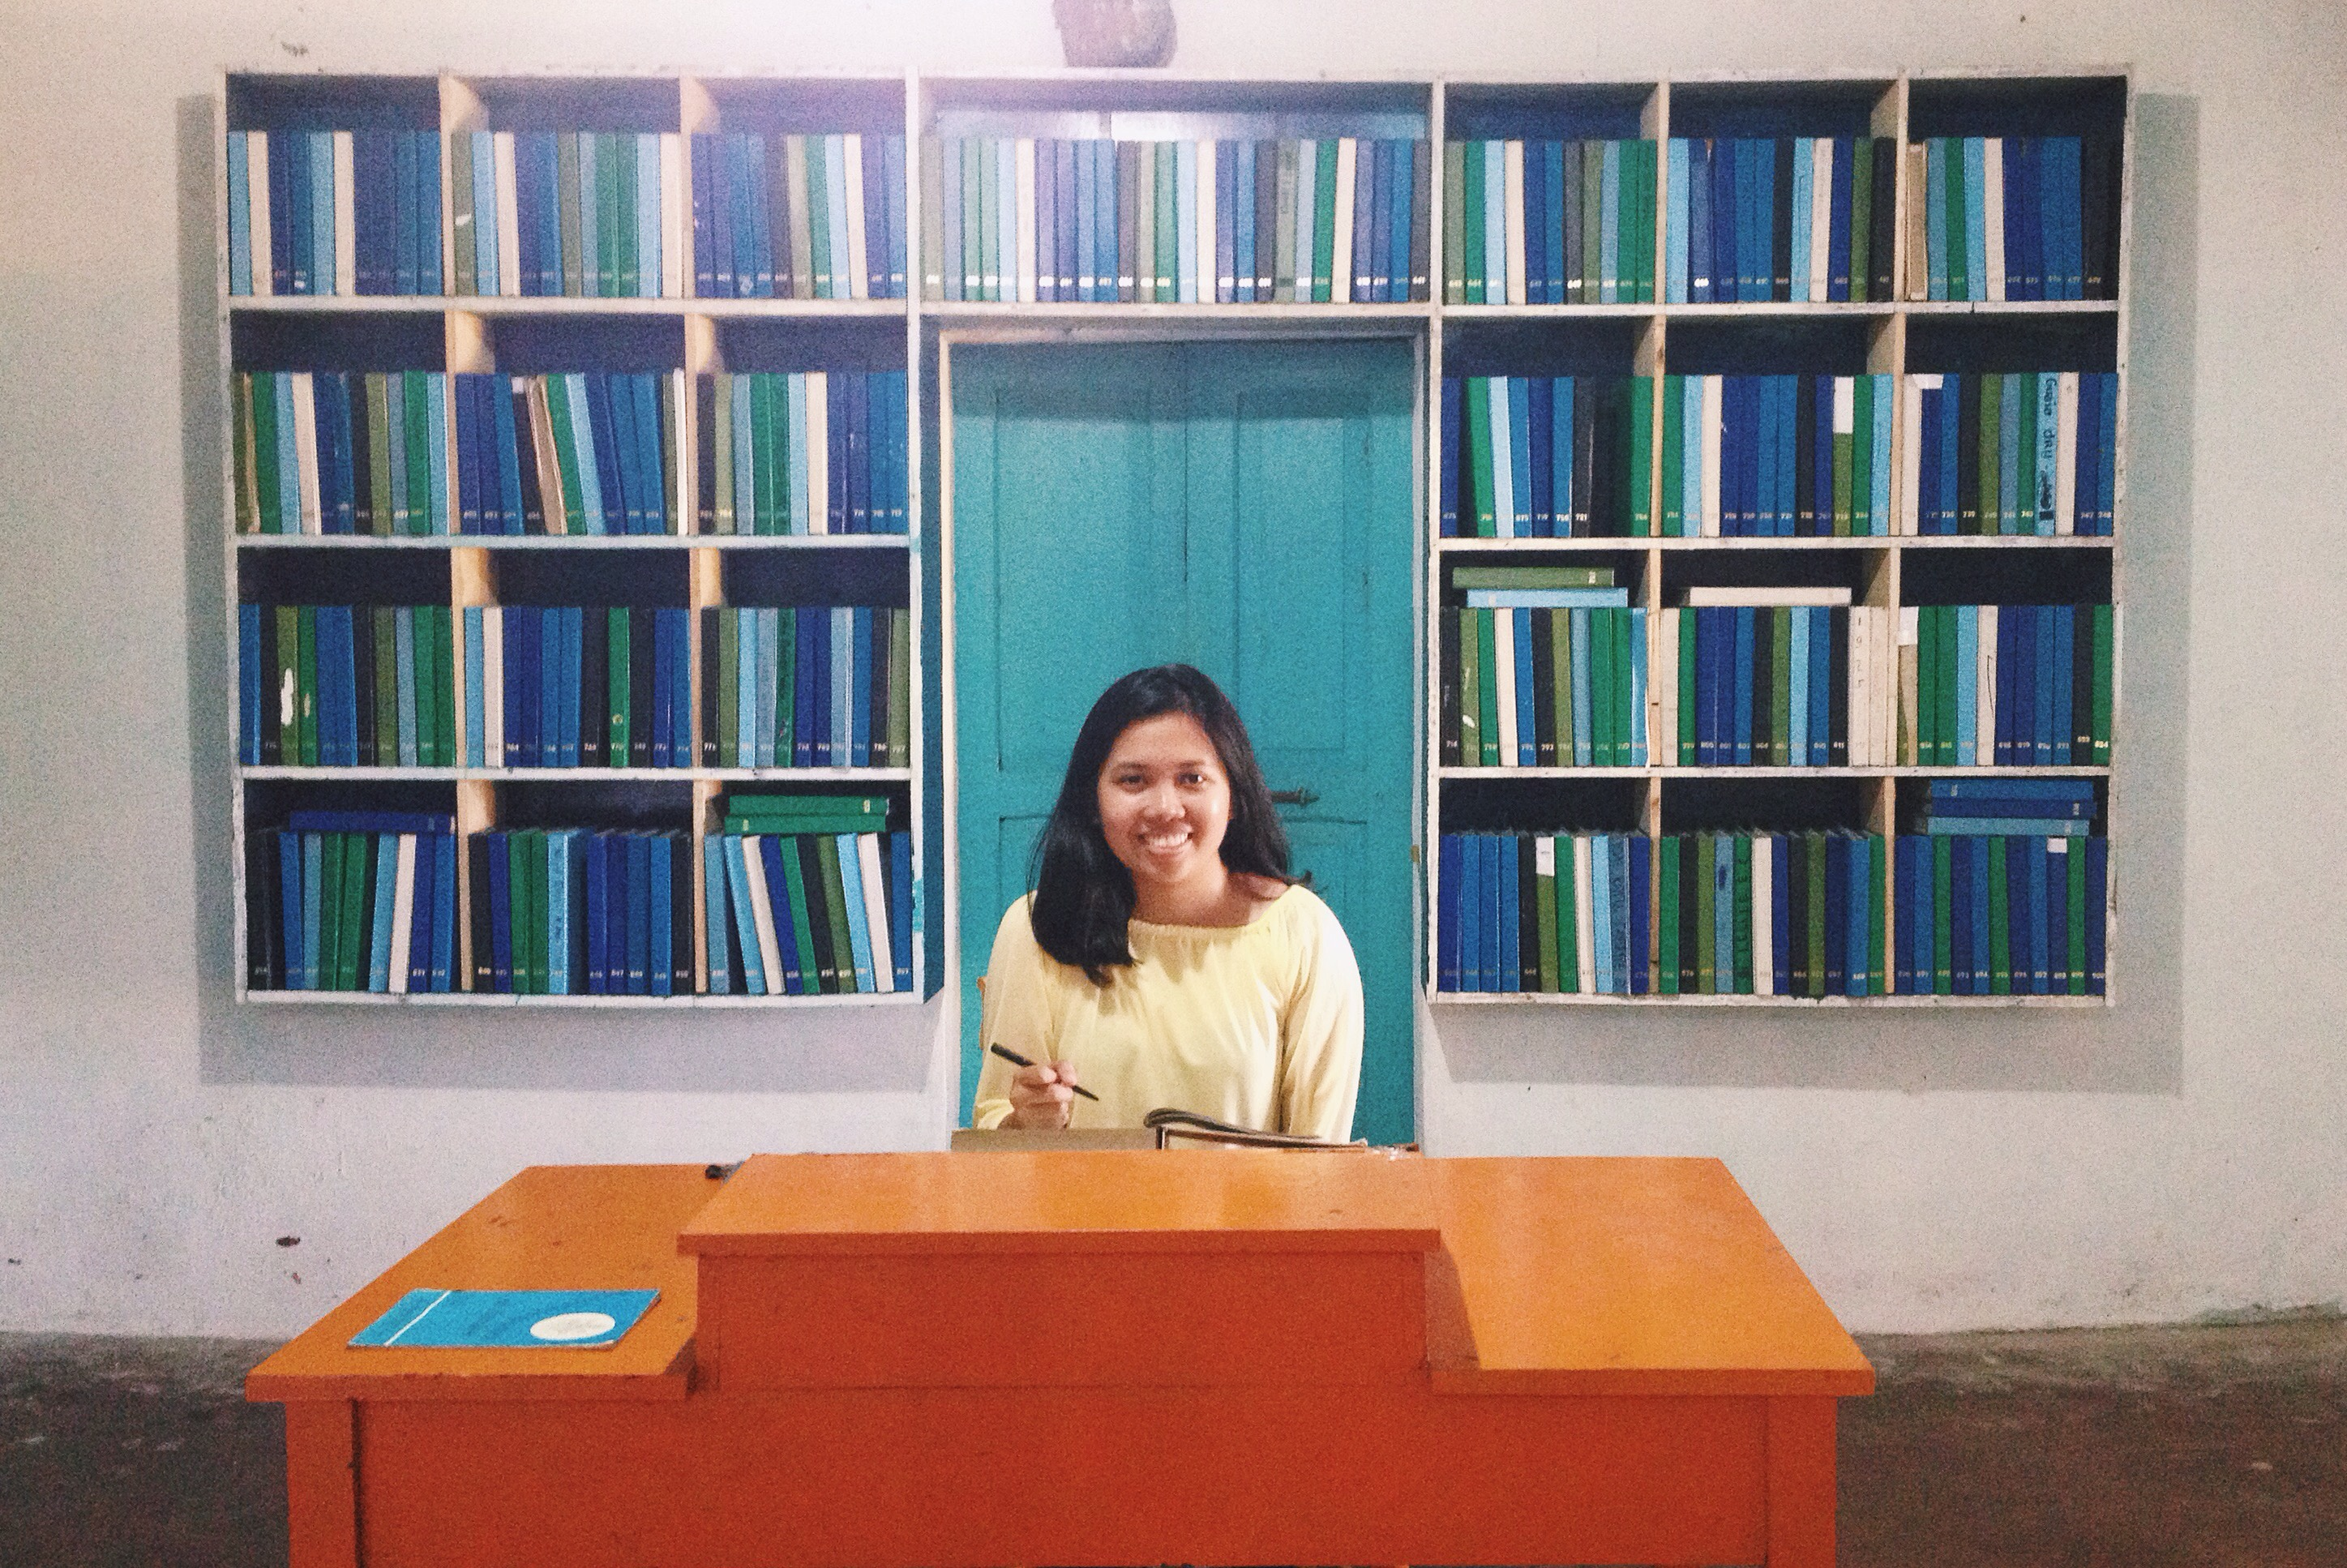 blank book library batanes